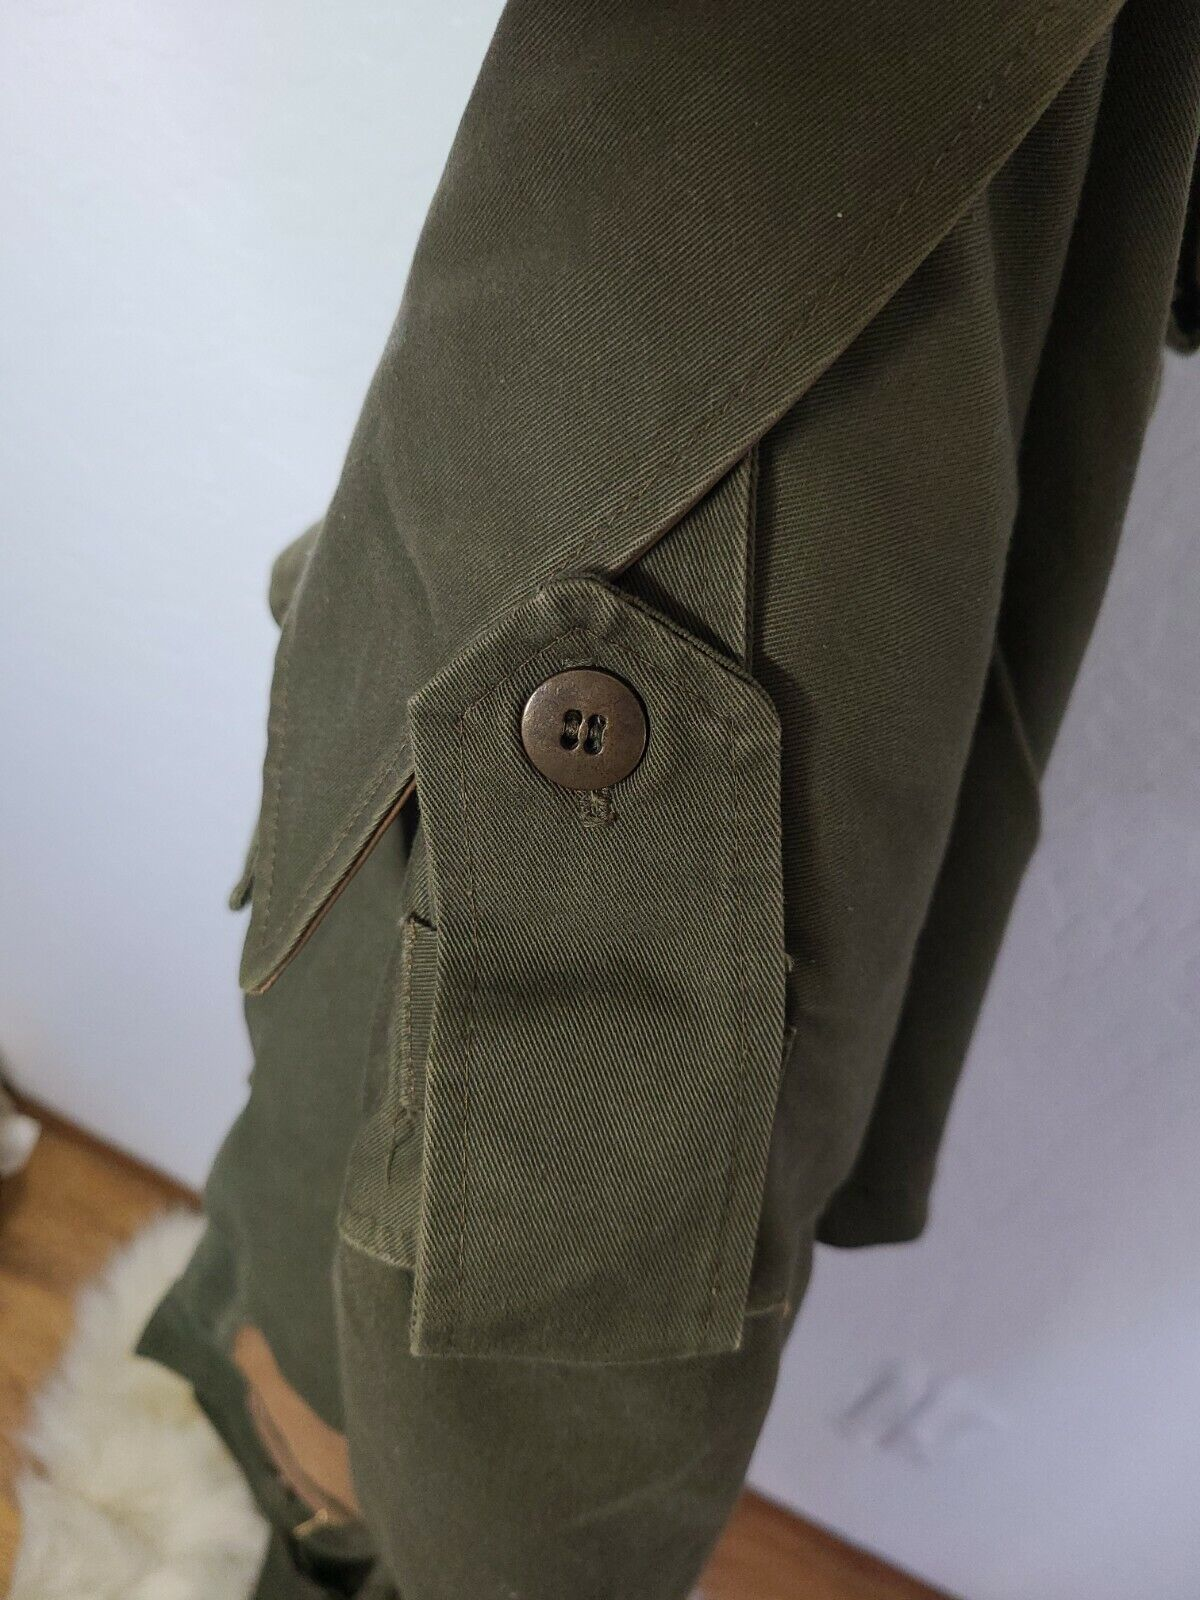 Classic Military Style Trench Coat, Olive Army Gr… - image 11